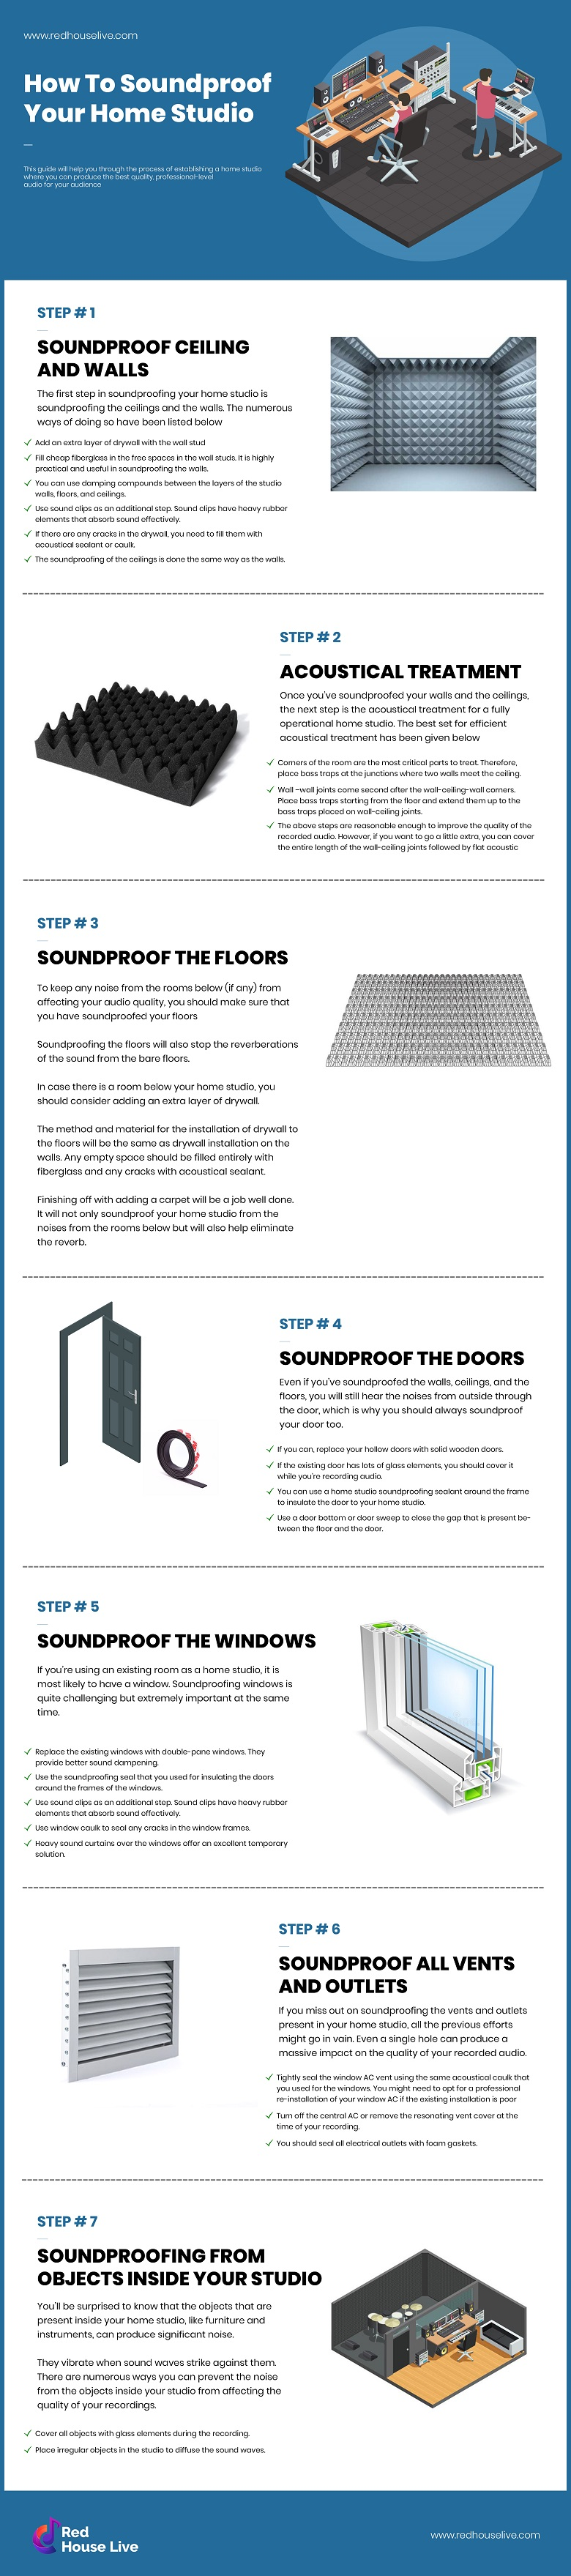 Soundproof Home Studio